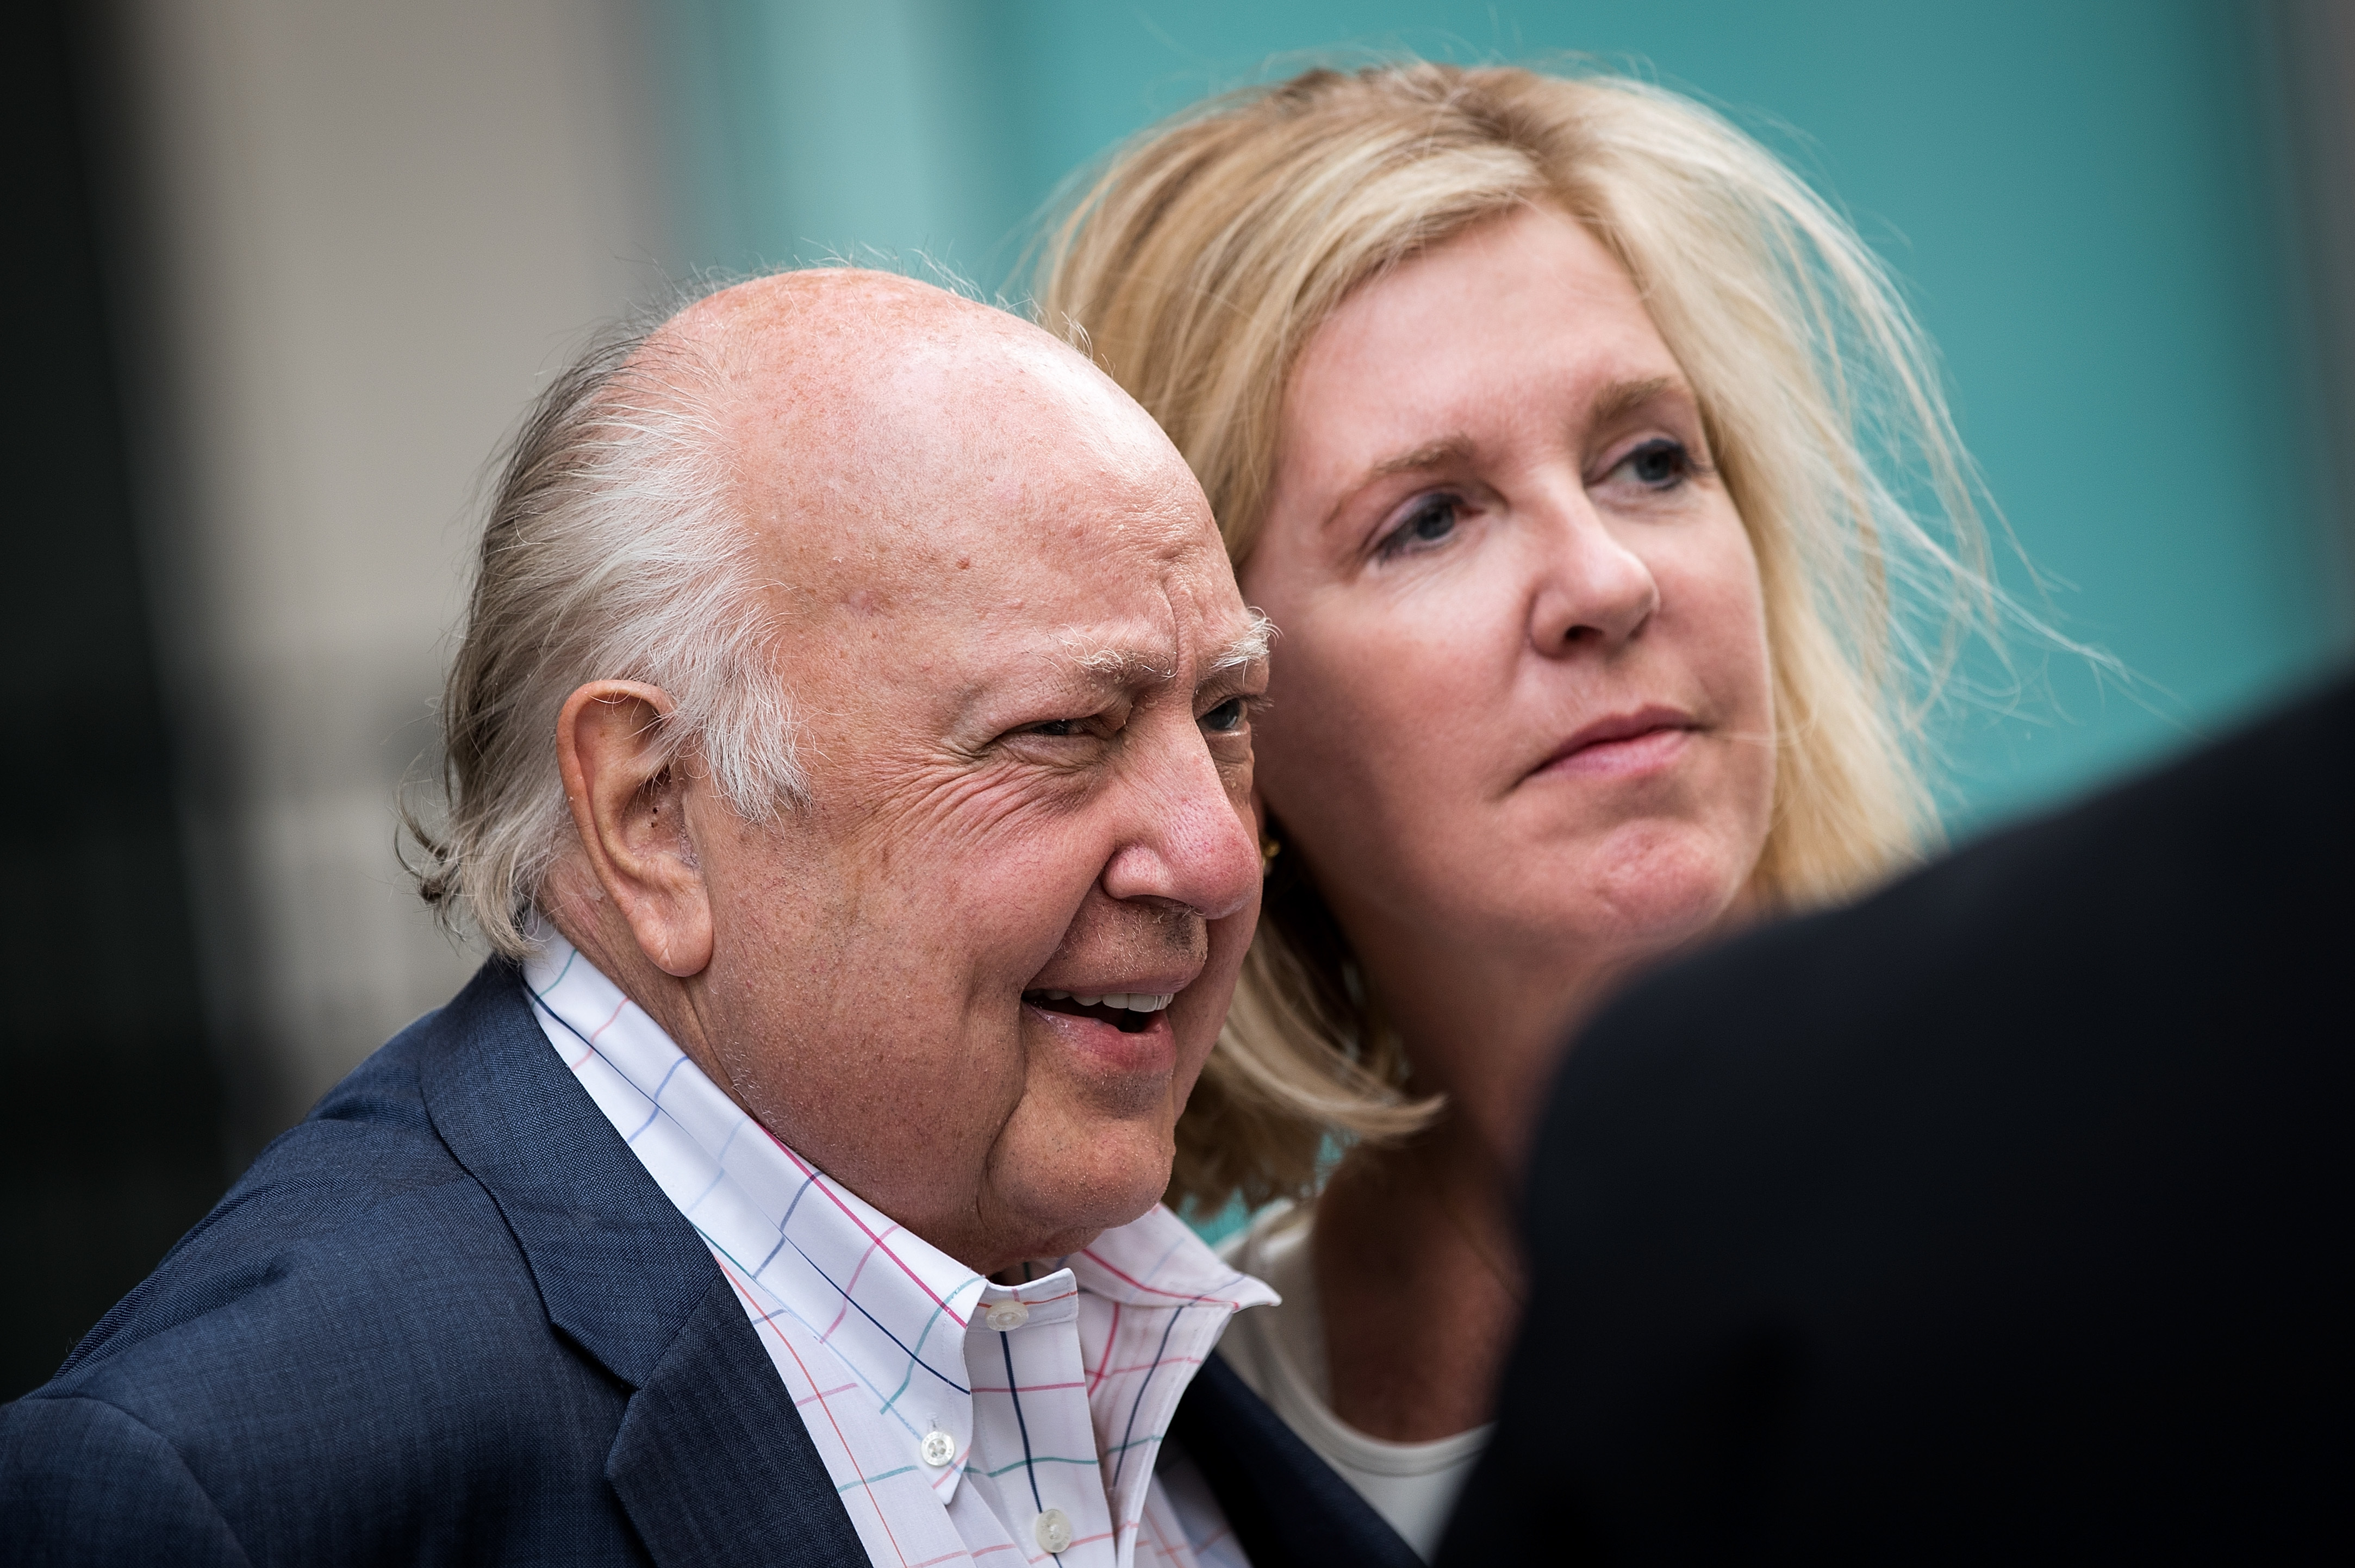 Fox News CEO and Chairman Roger Ailes and his wife, Elizabeth Tilson, leave the News Corp. building in New York on Tuesday. Ailes is stepping down from his role and Rupert Murdoch will be taking over as chairman and acting CEO. (Photo by Drew Angerer/Getty Images)